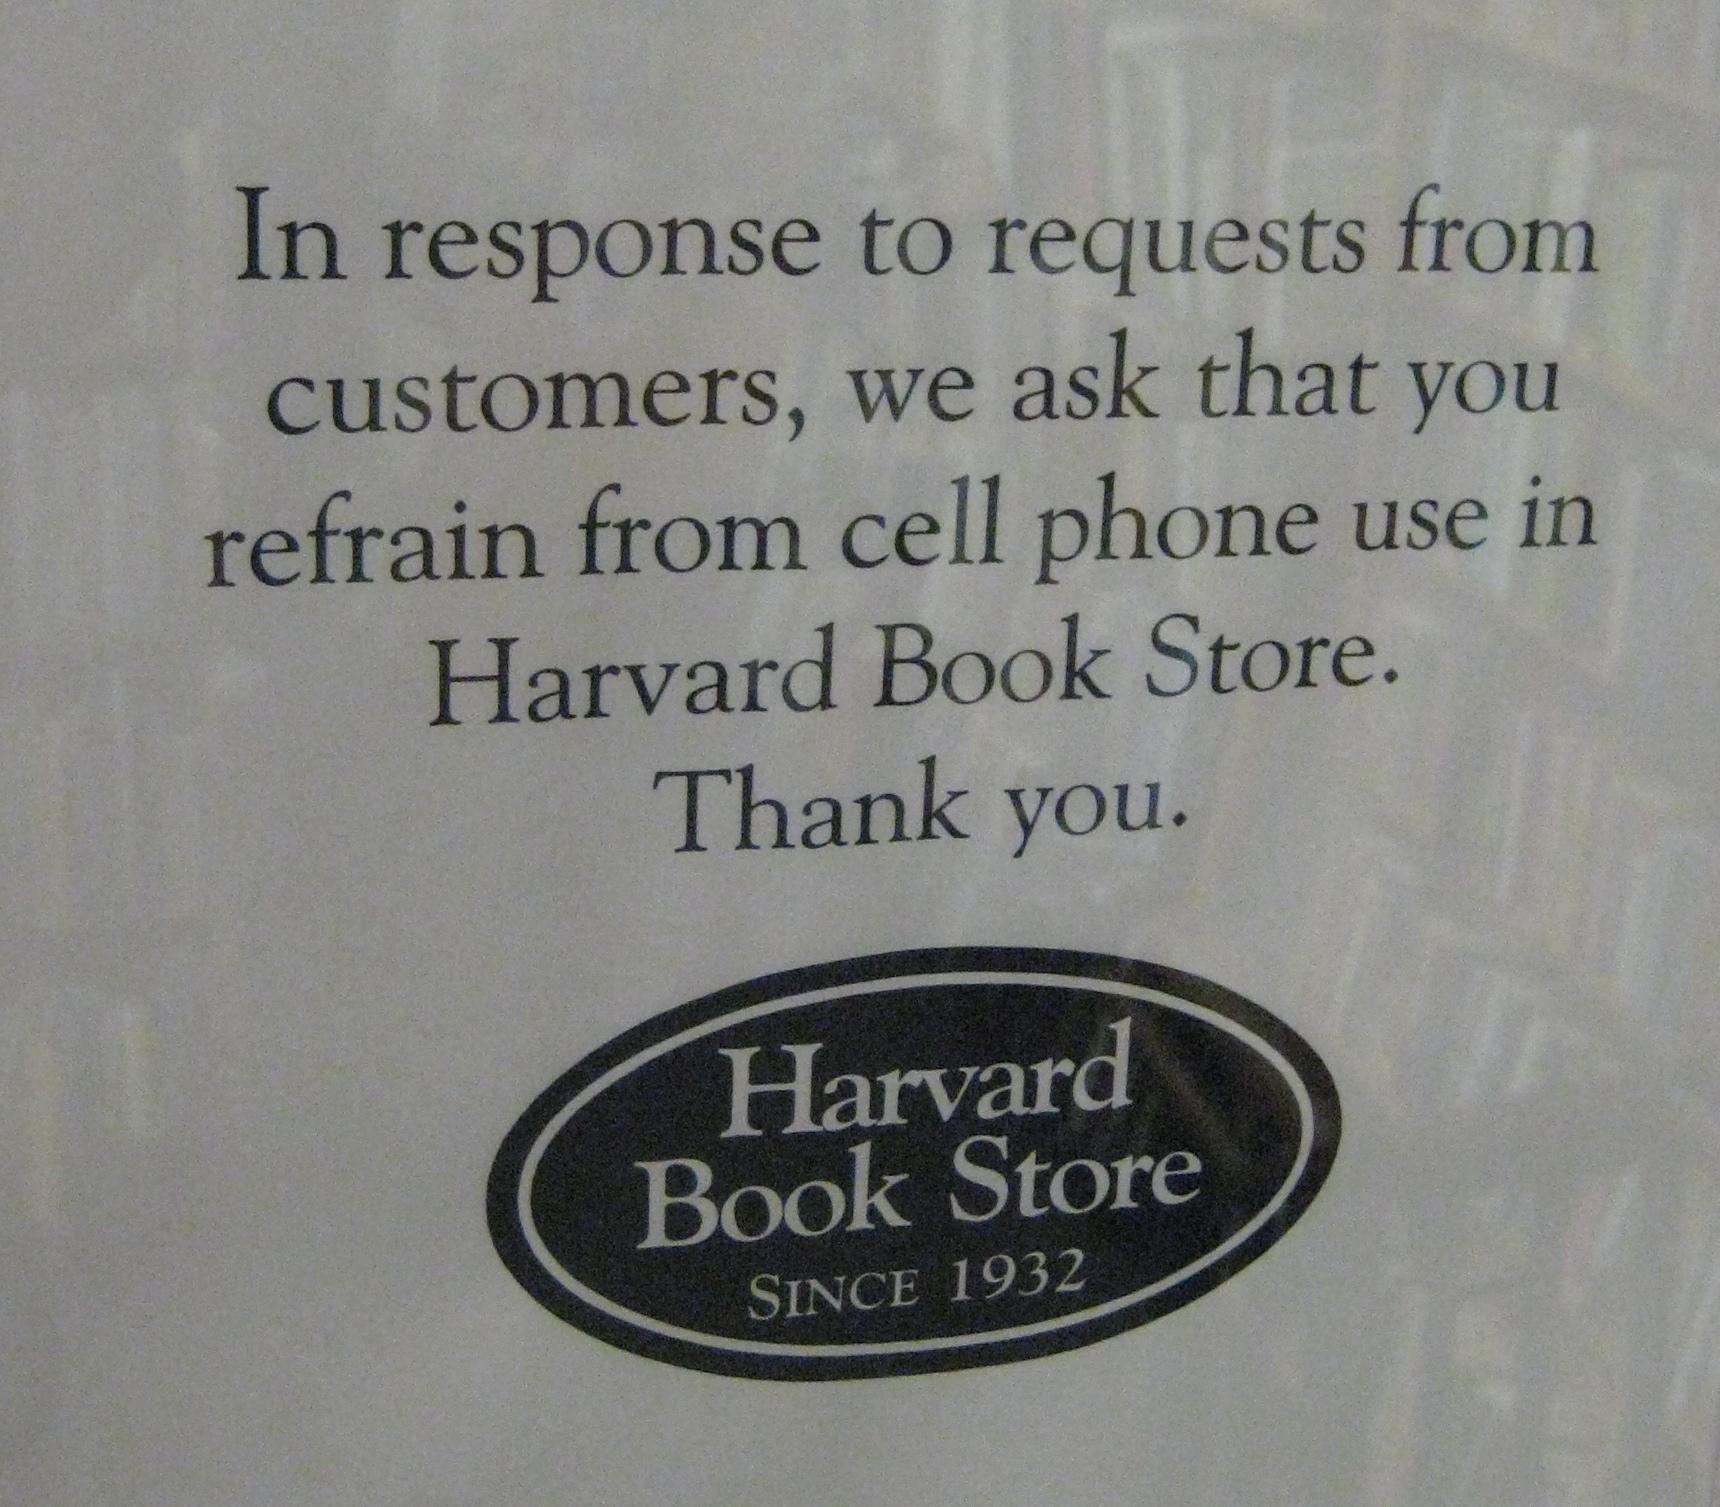 Seen at Harvard Book Store, Cambridge, Massachusetts